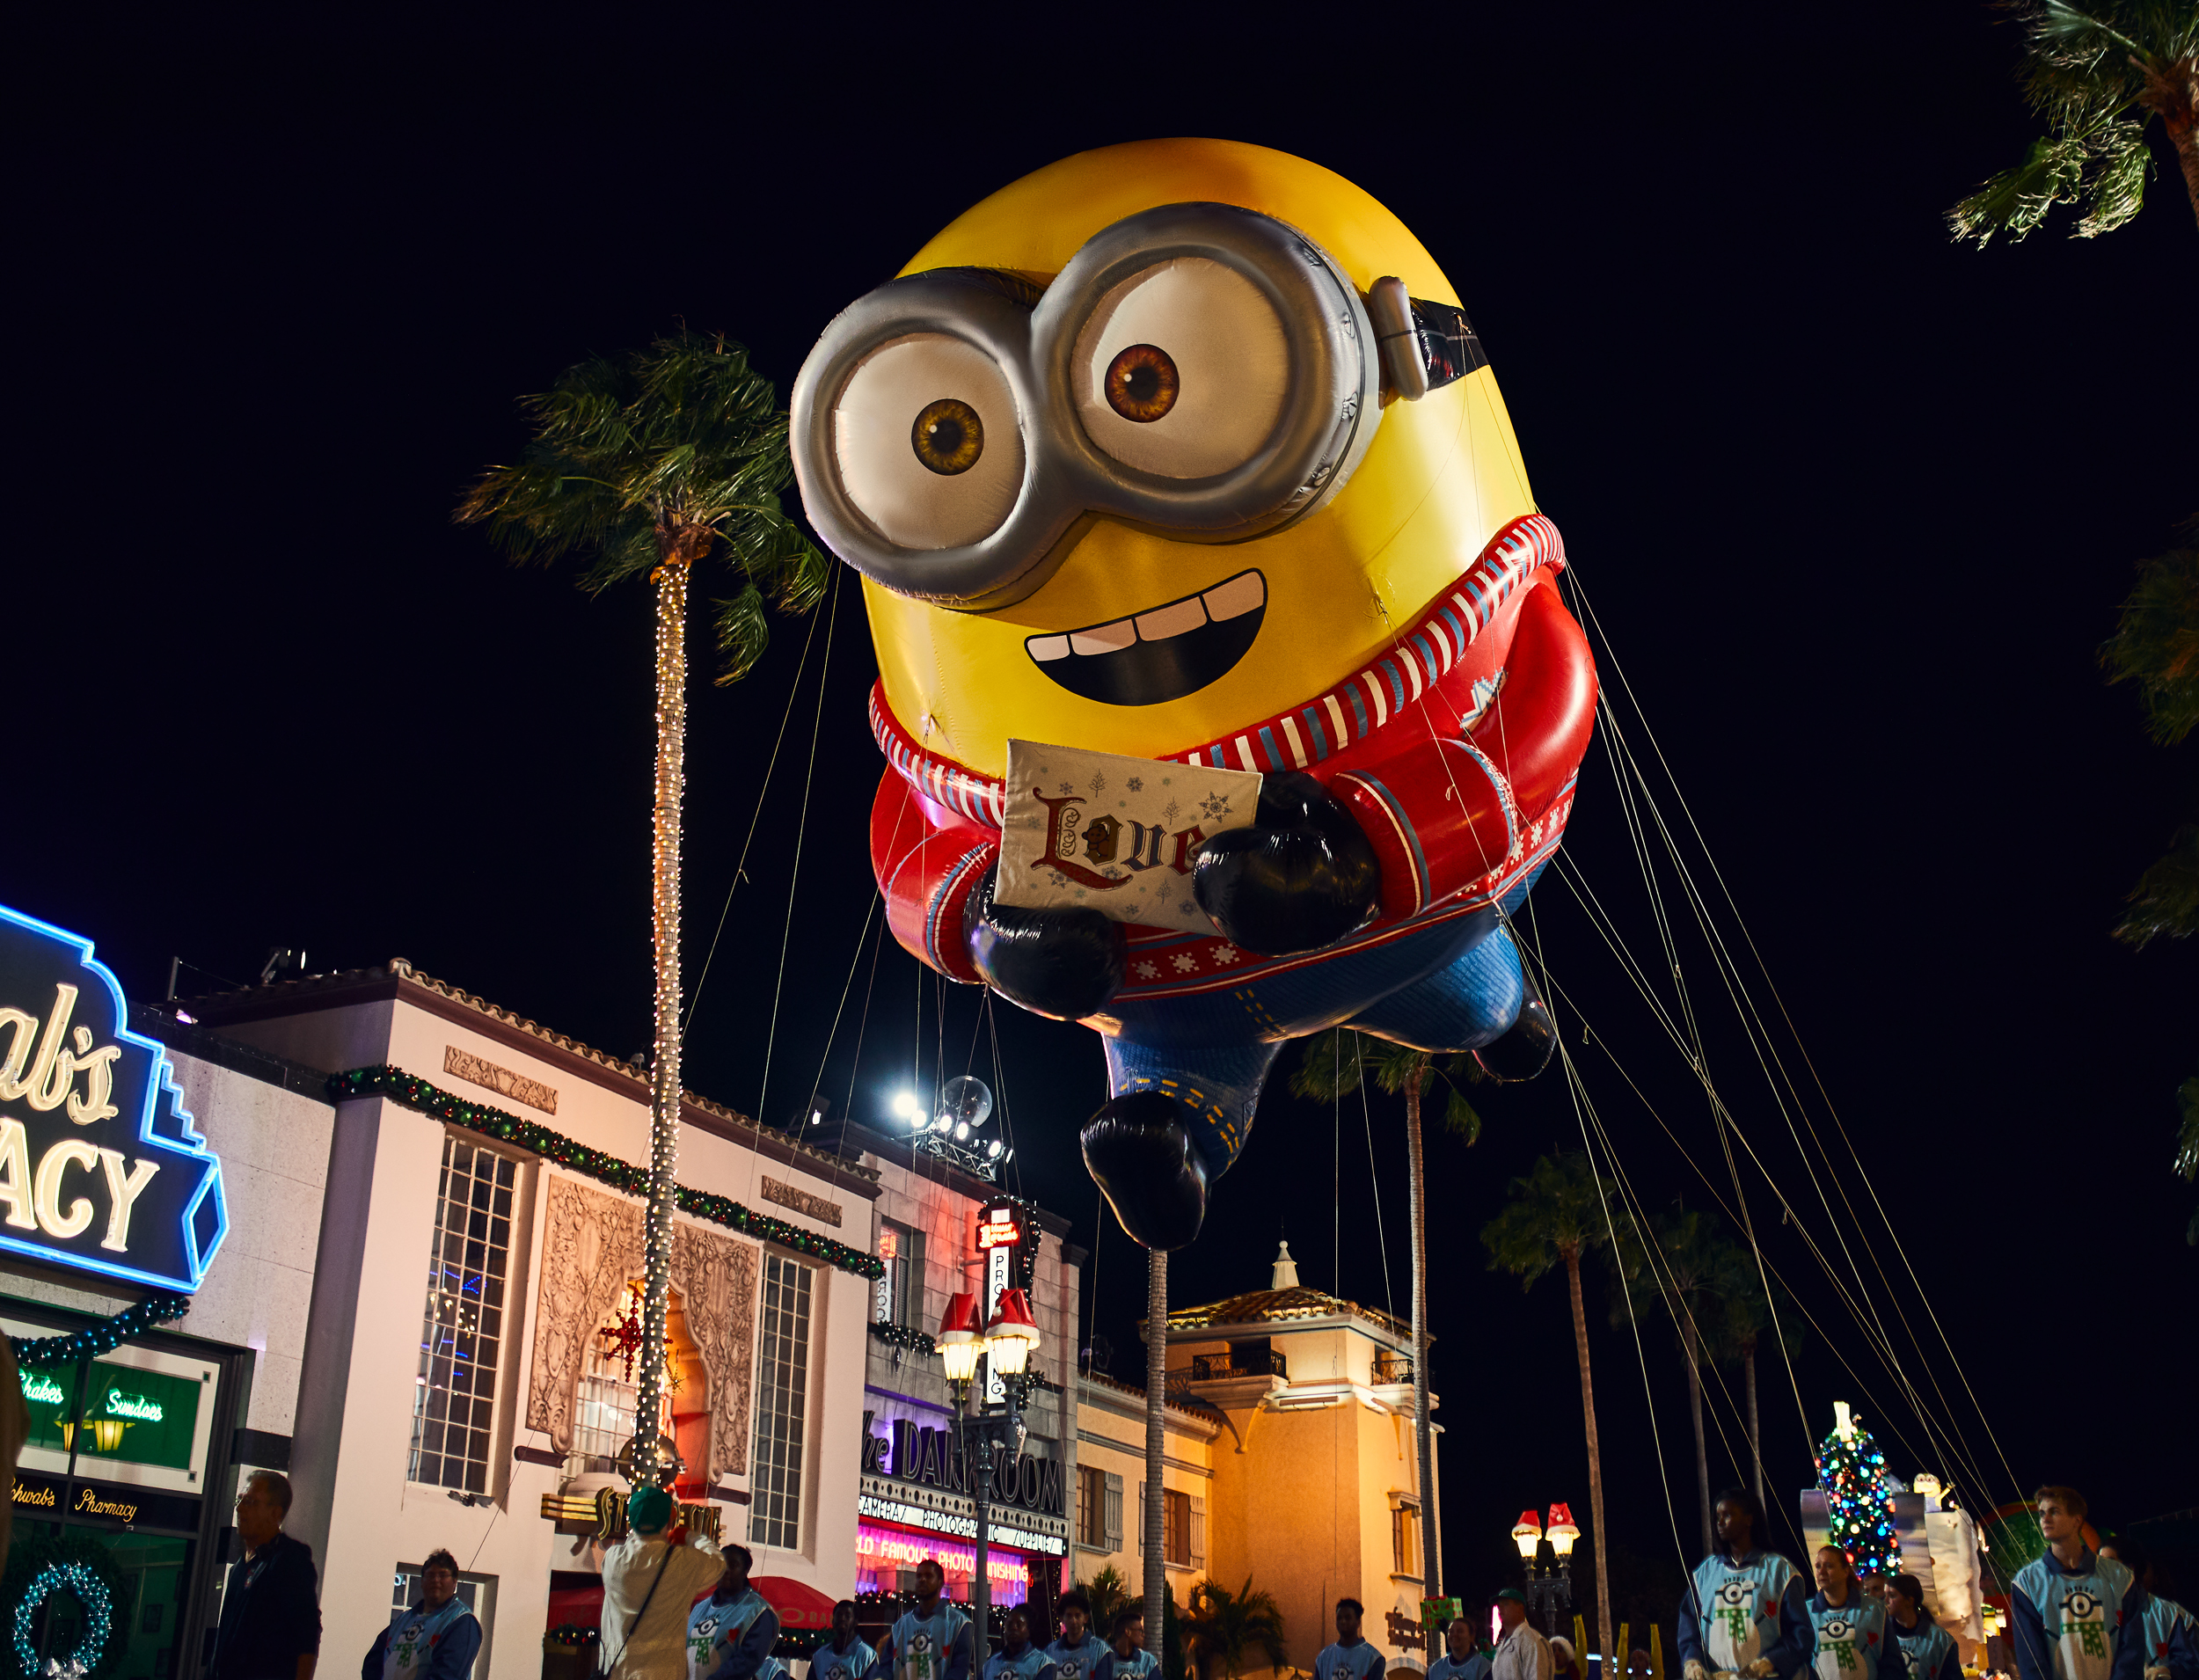 7 Things You Must Do During the Holidays at Universal Orlando. Perfect for Christmas or New Year's Eve trip planning at Harry Potter World!